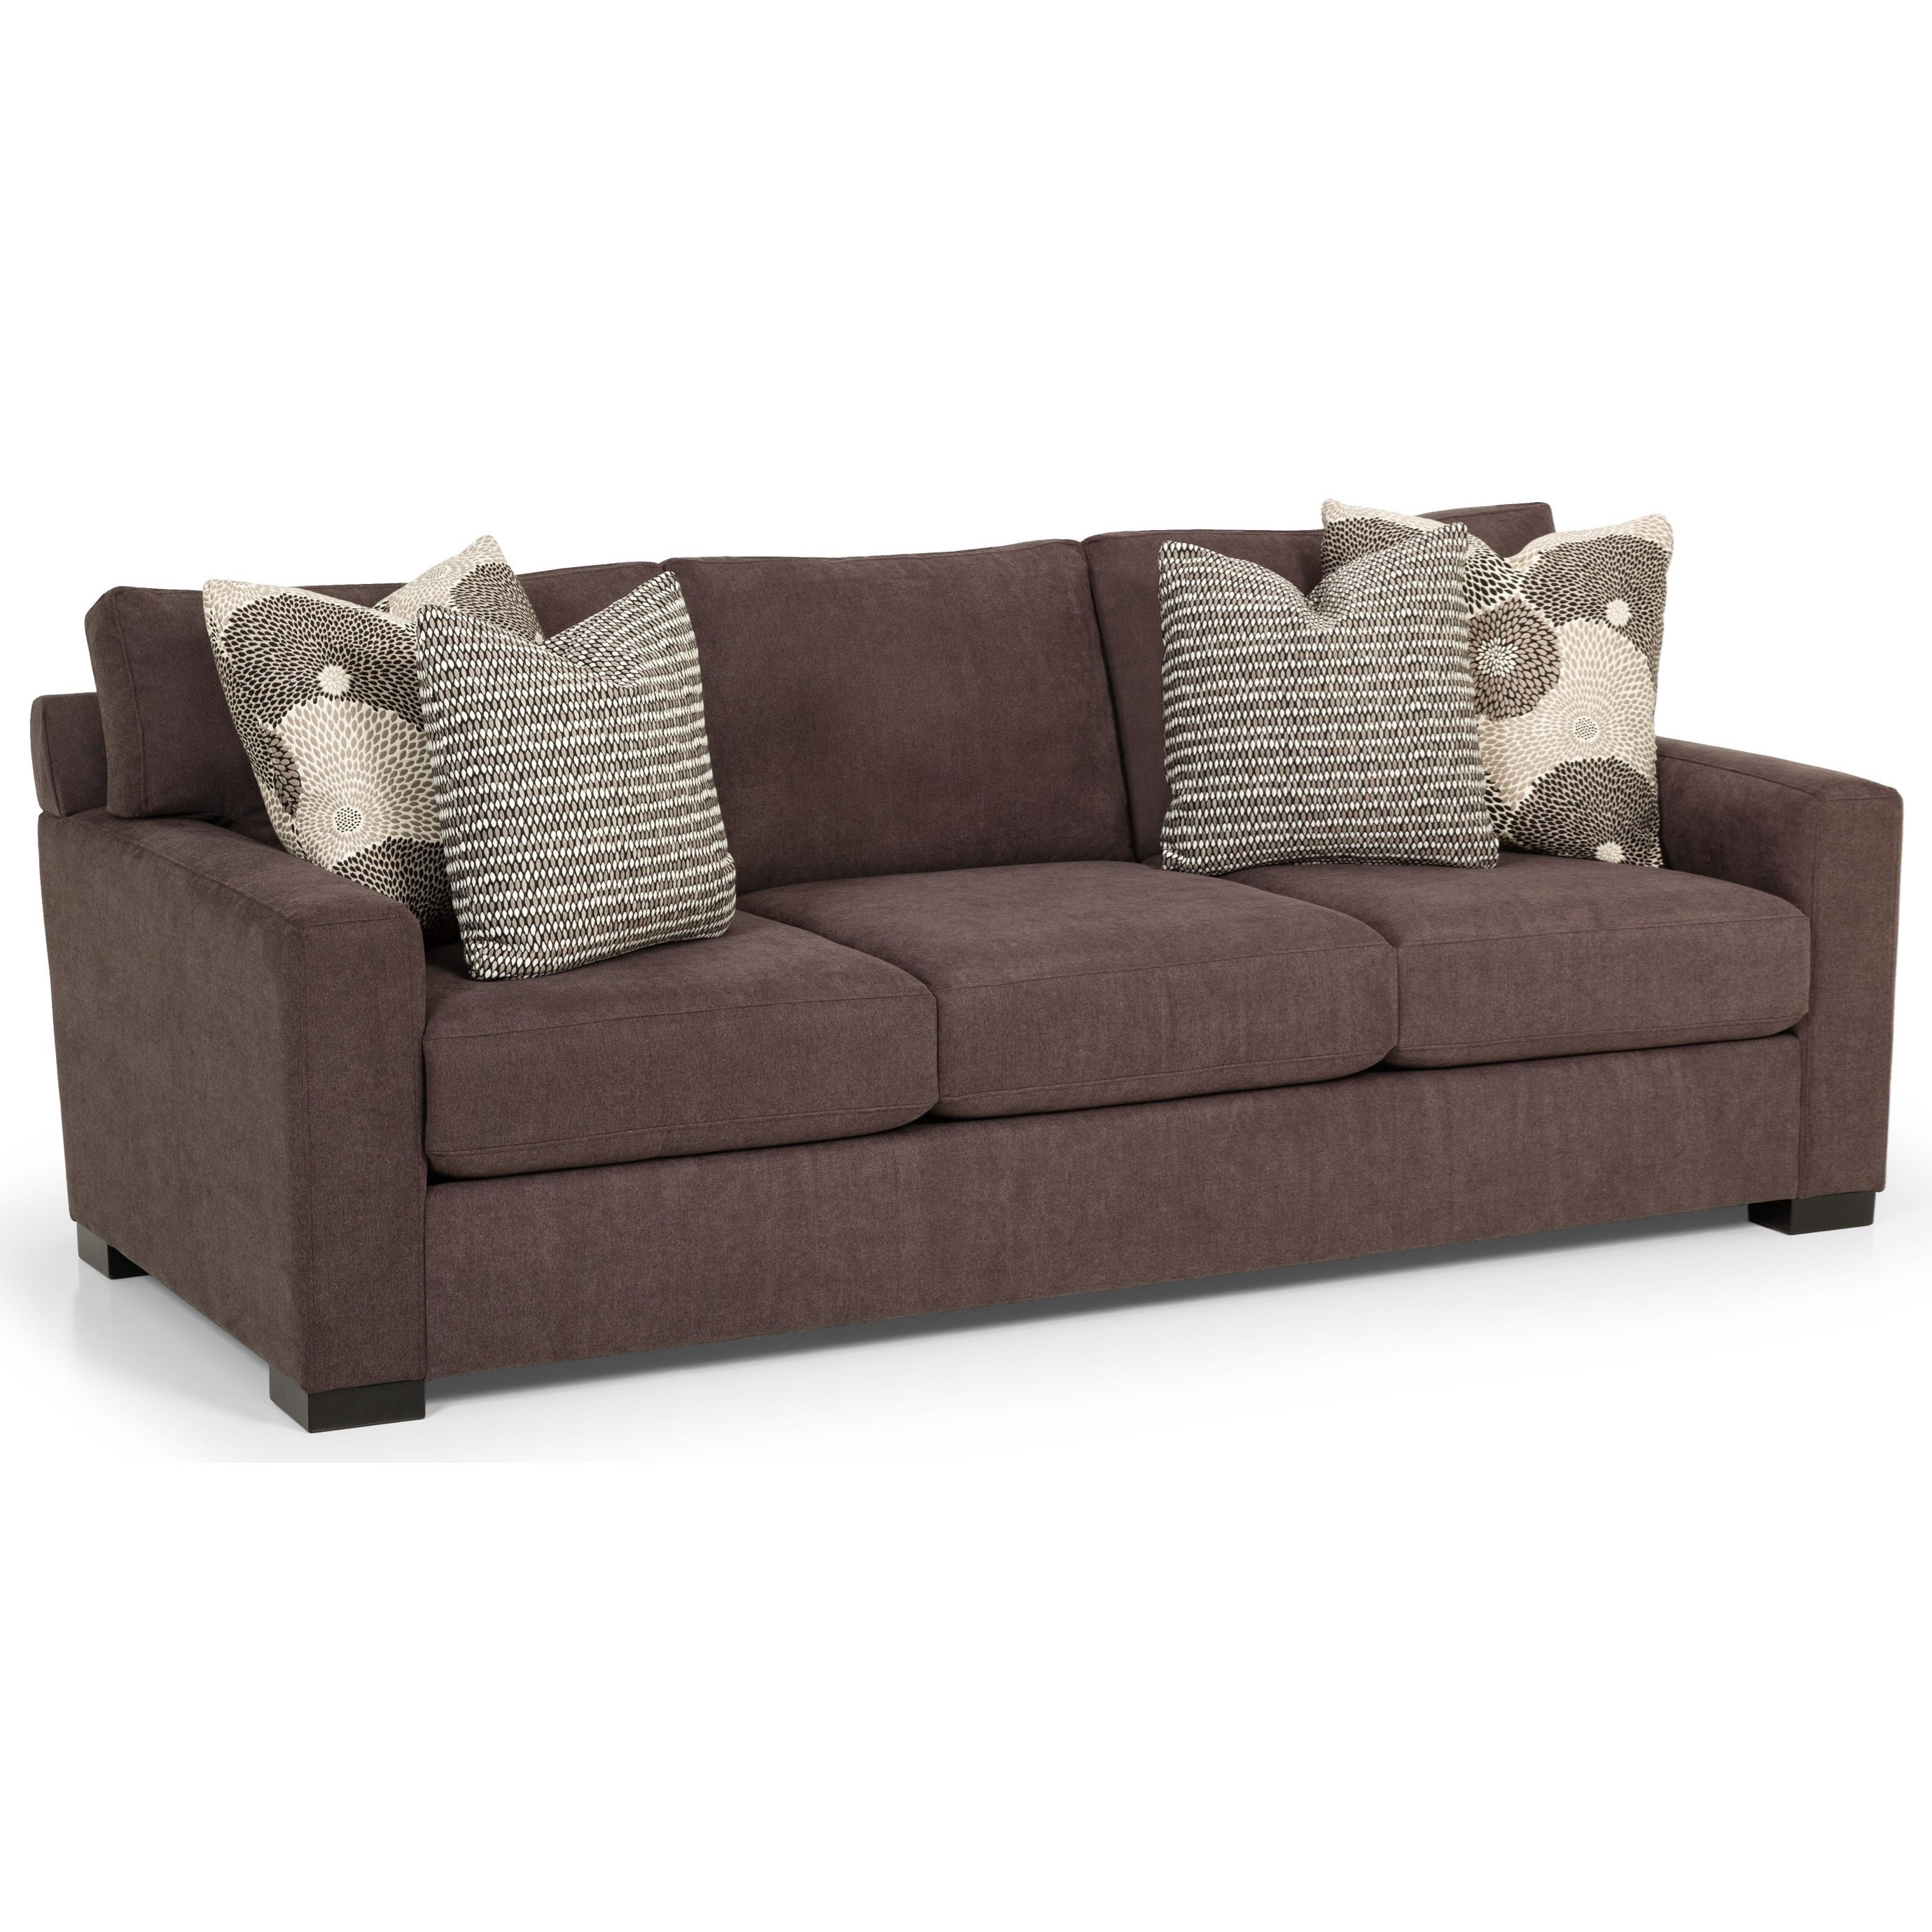 383 Sofa by Stanton at Wilson's Furniture